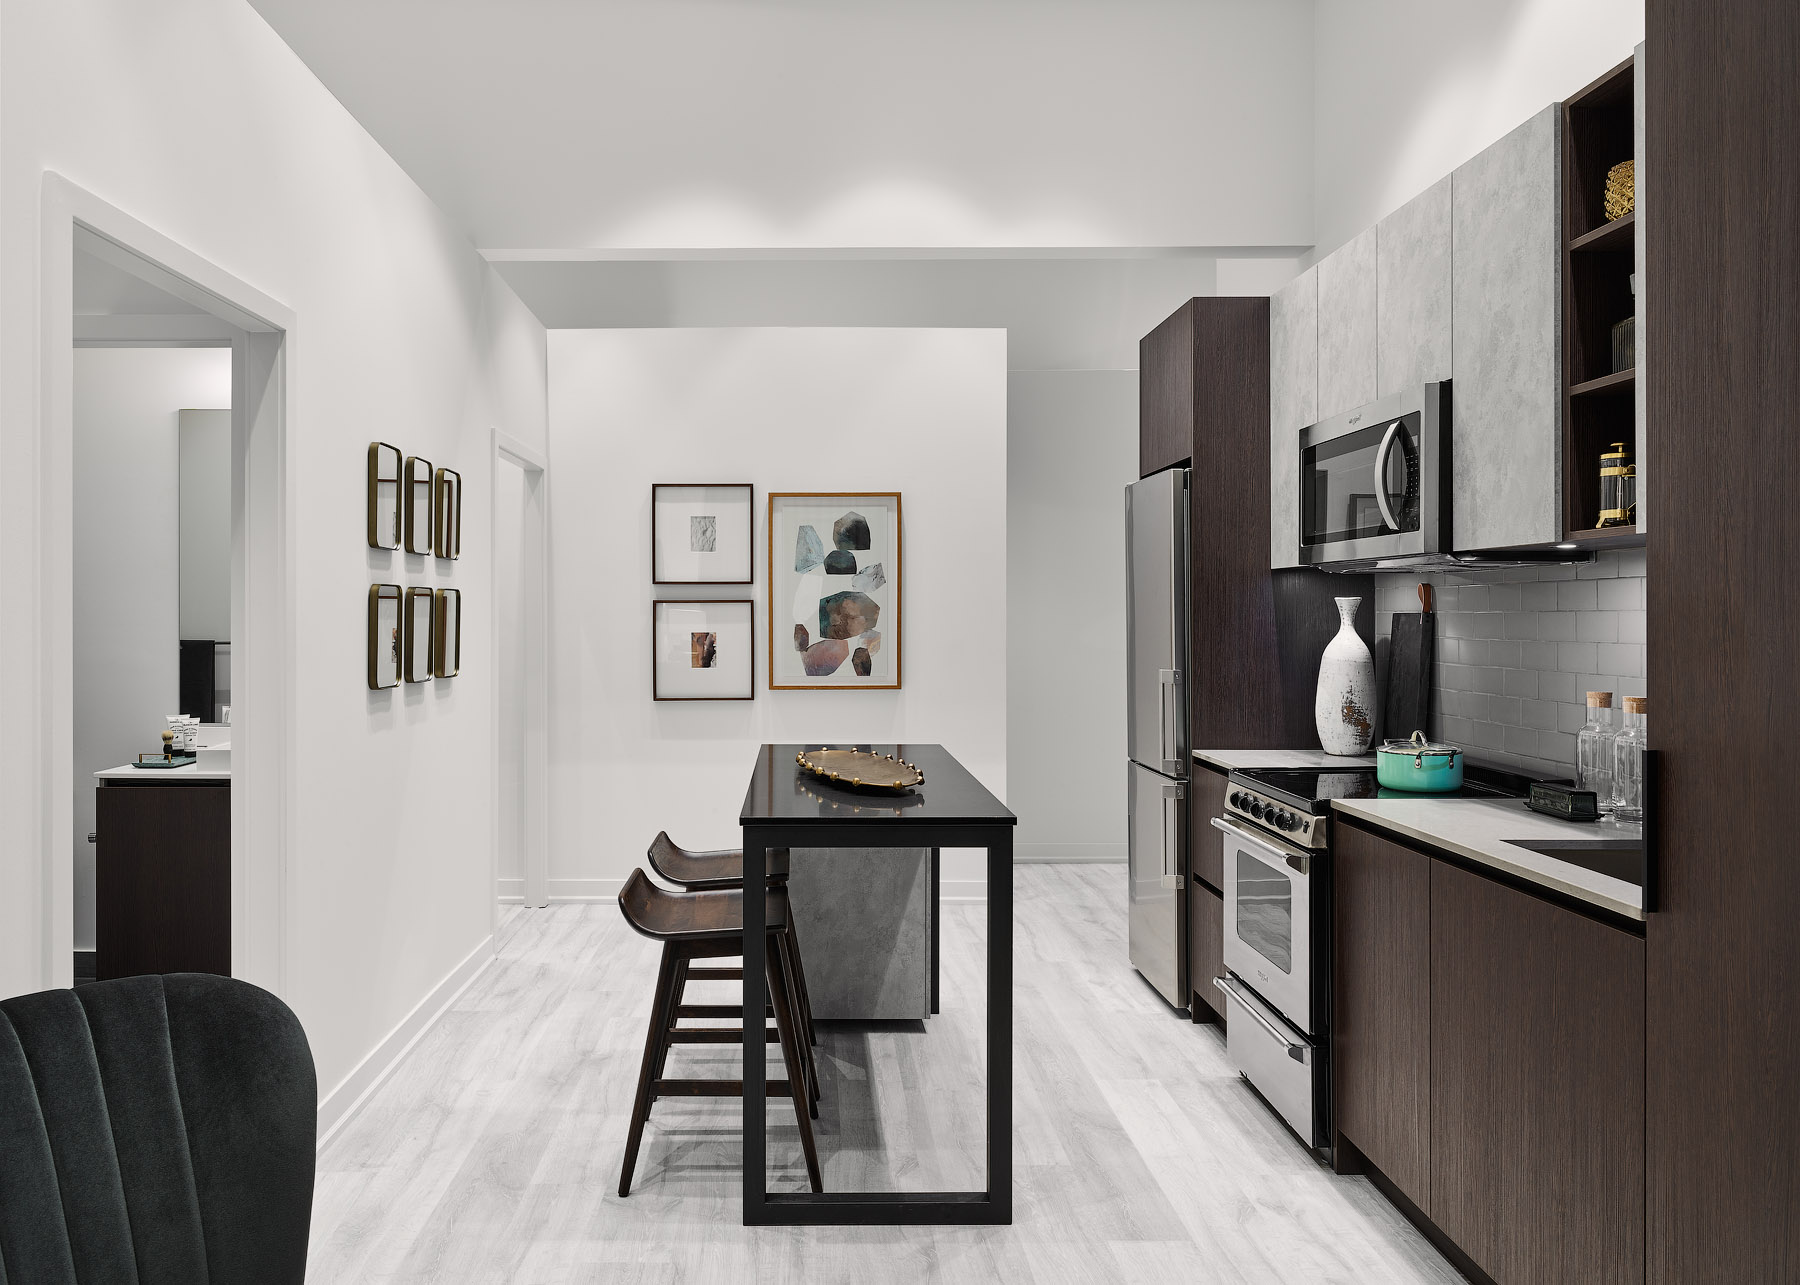 Empire Phoenix kitchen with white walls, dark brown cabinets, and island with bar stools